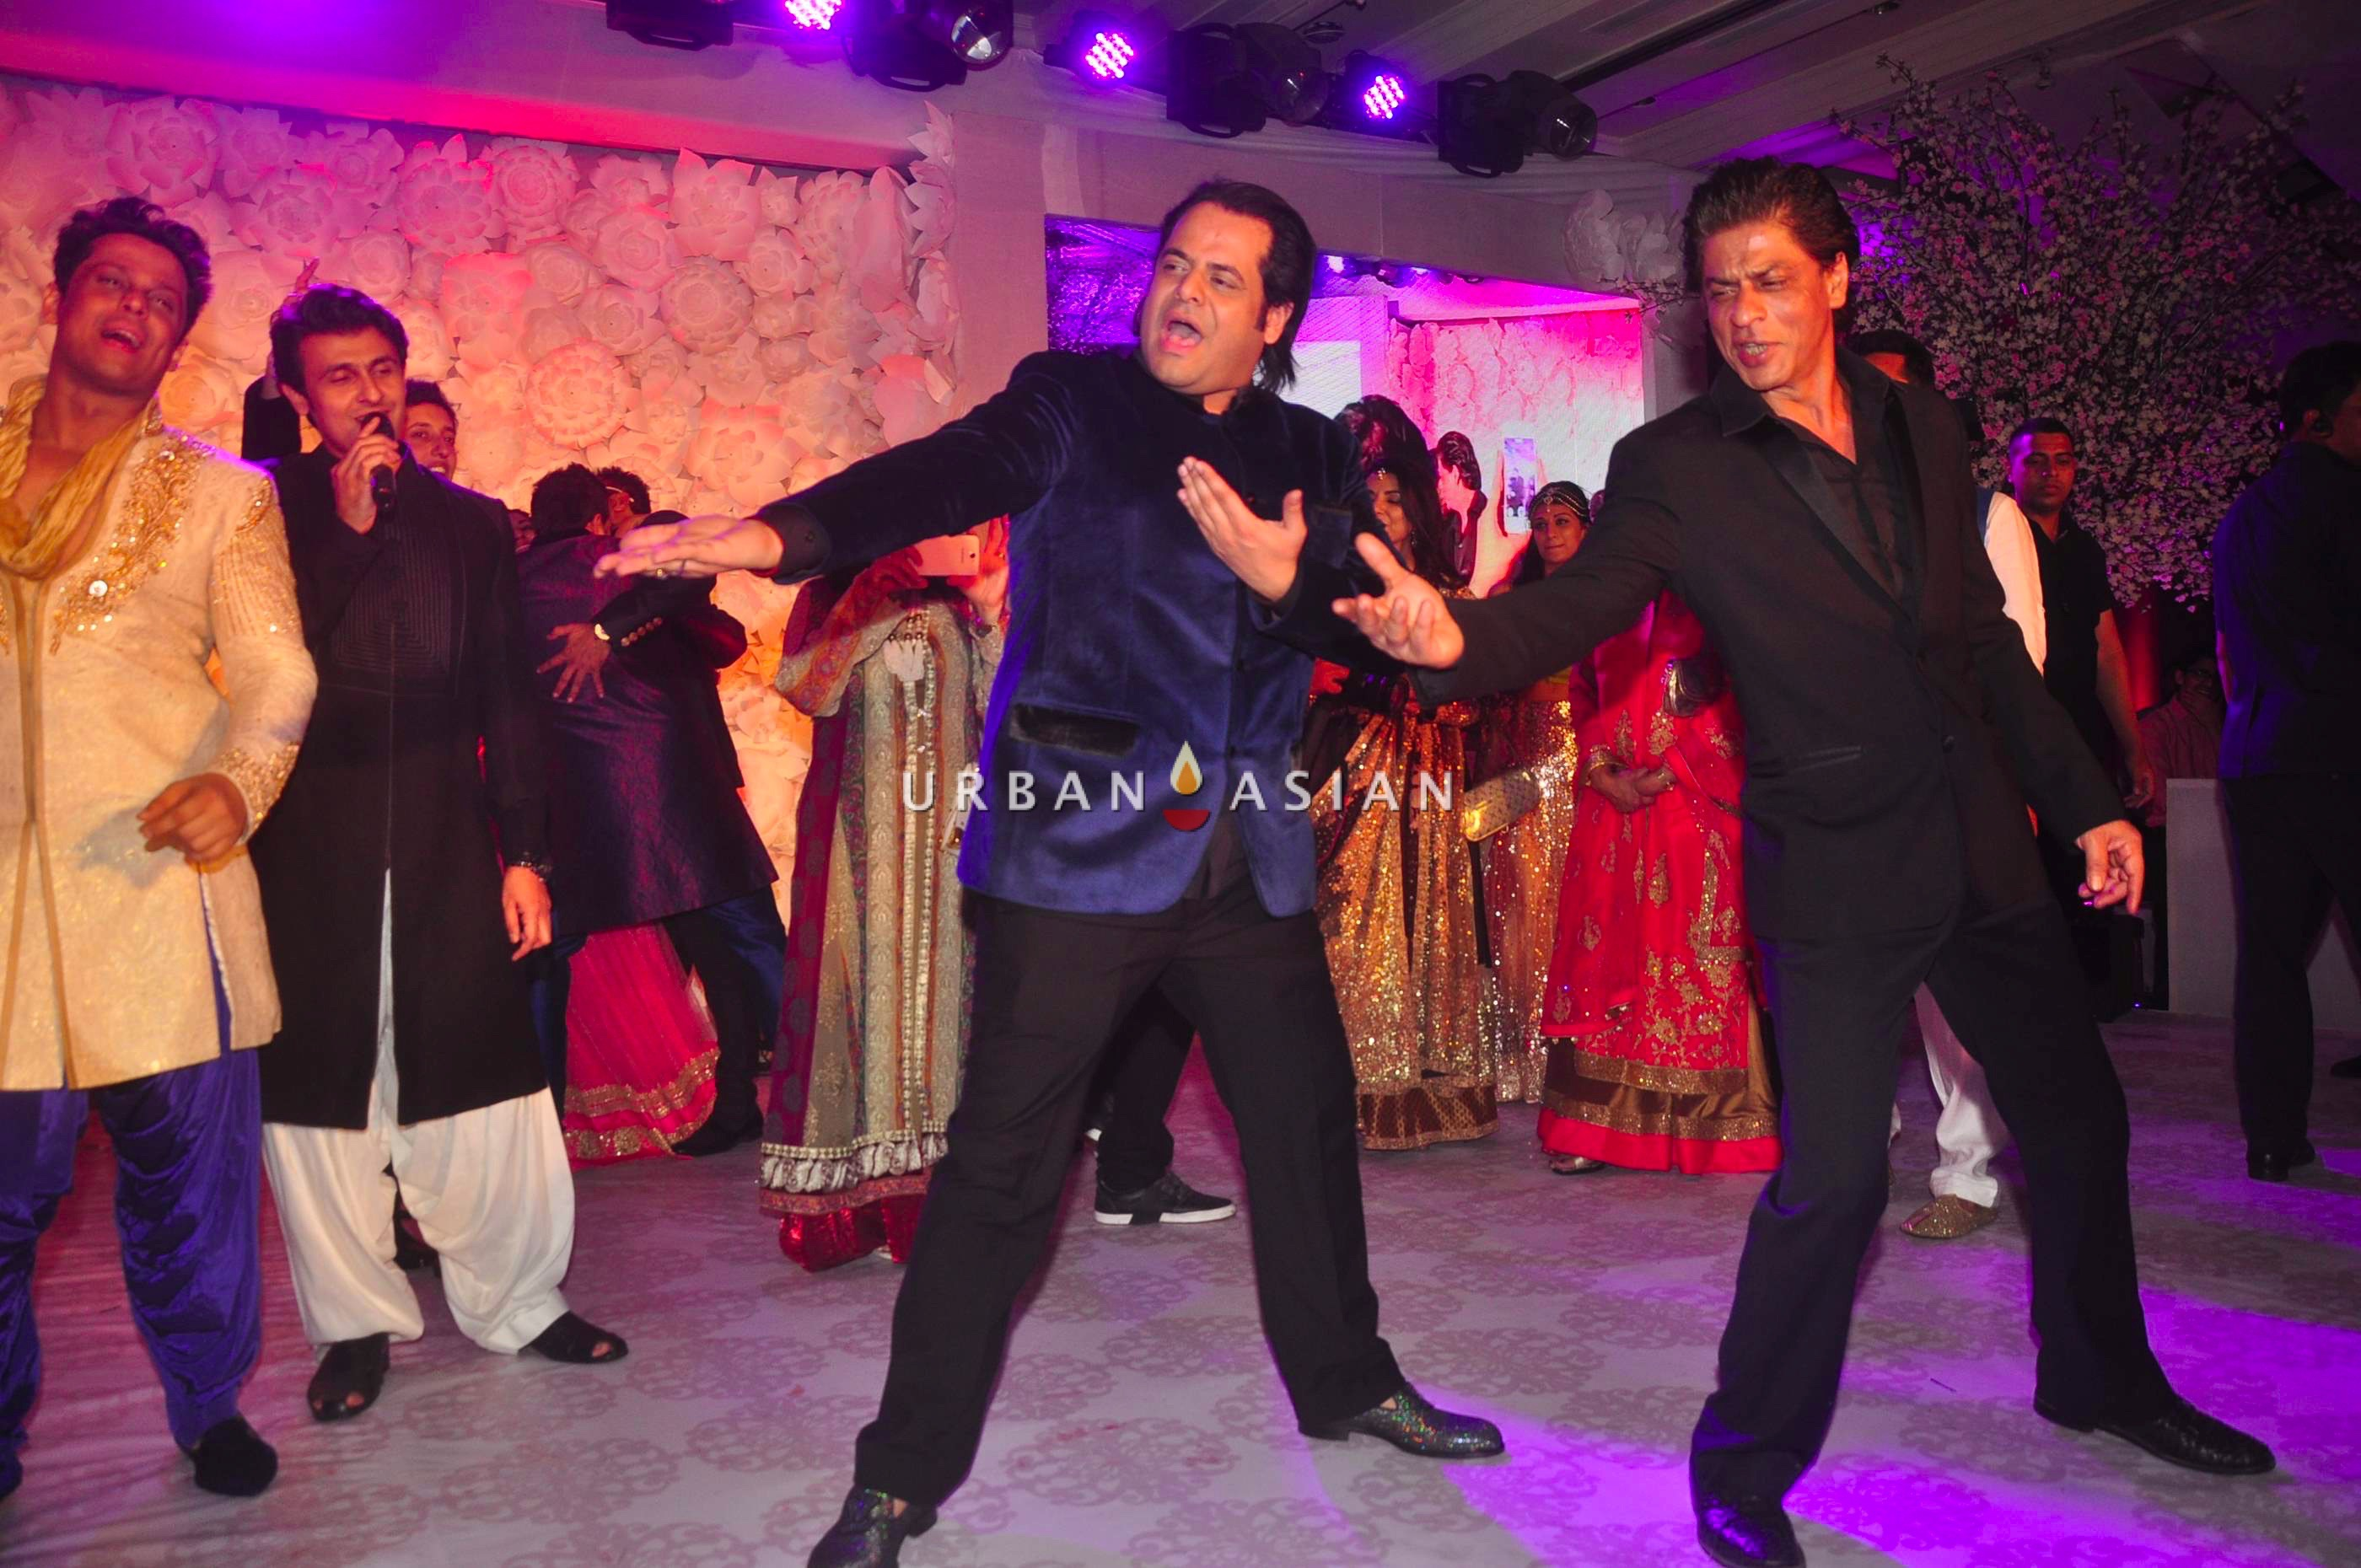 Shahrukh Khan performing on stage with couples1